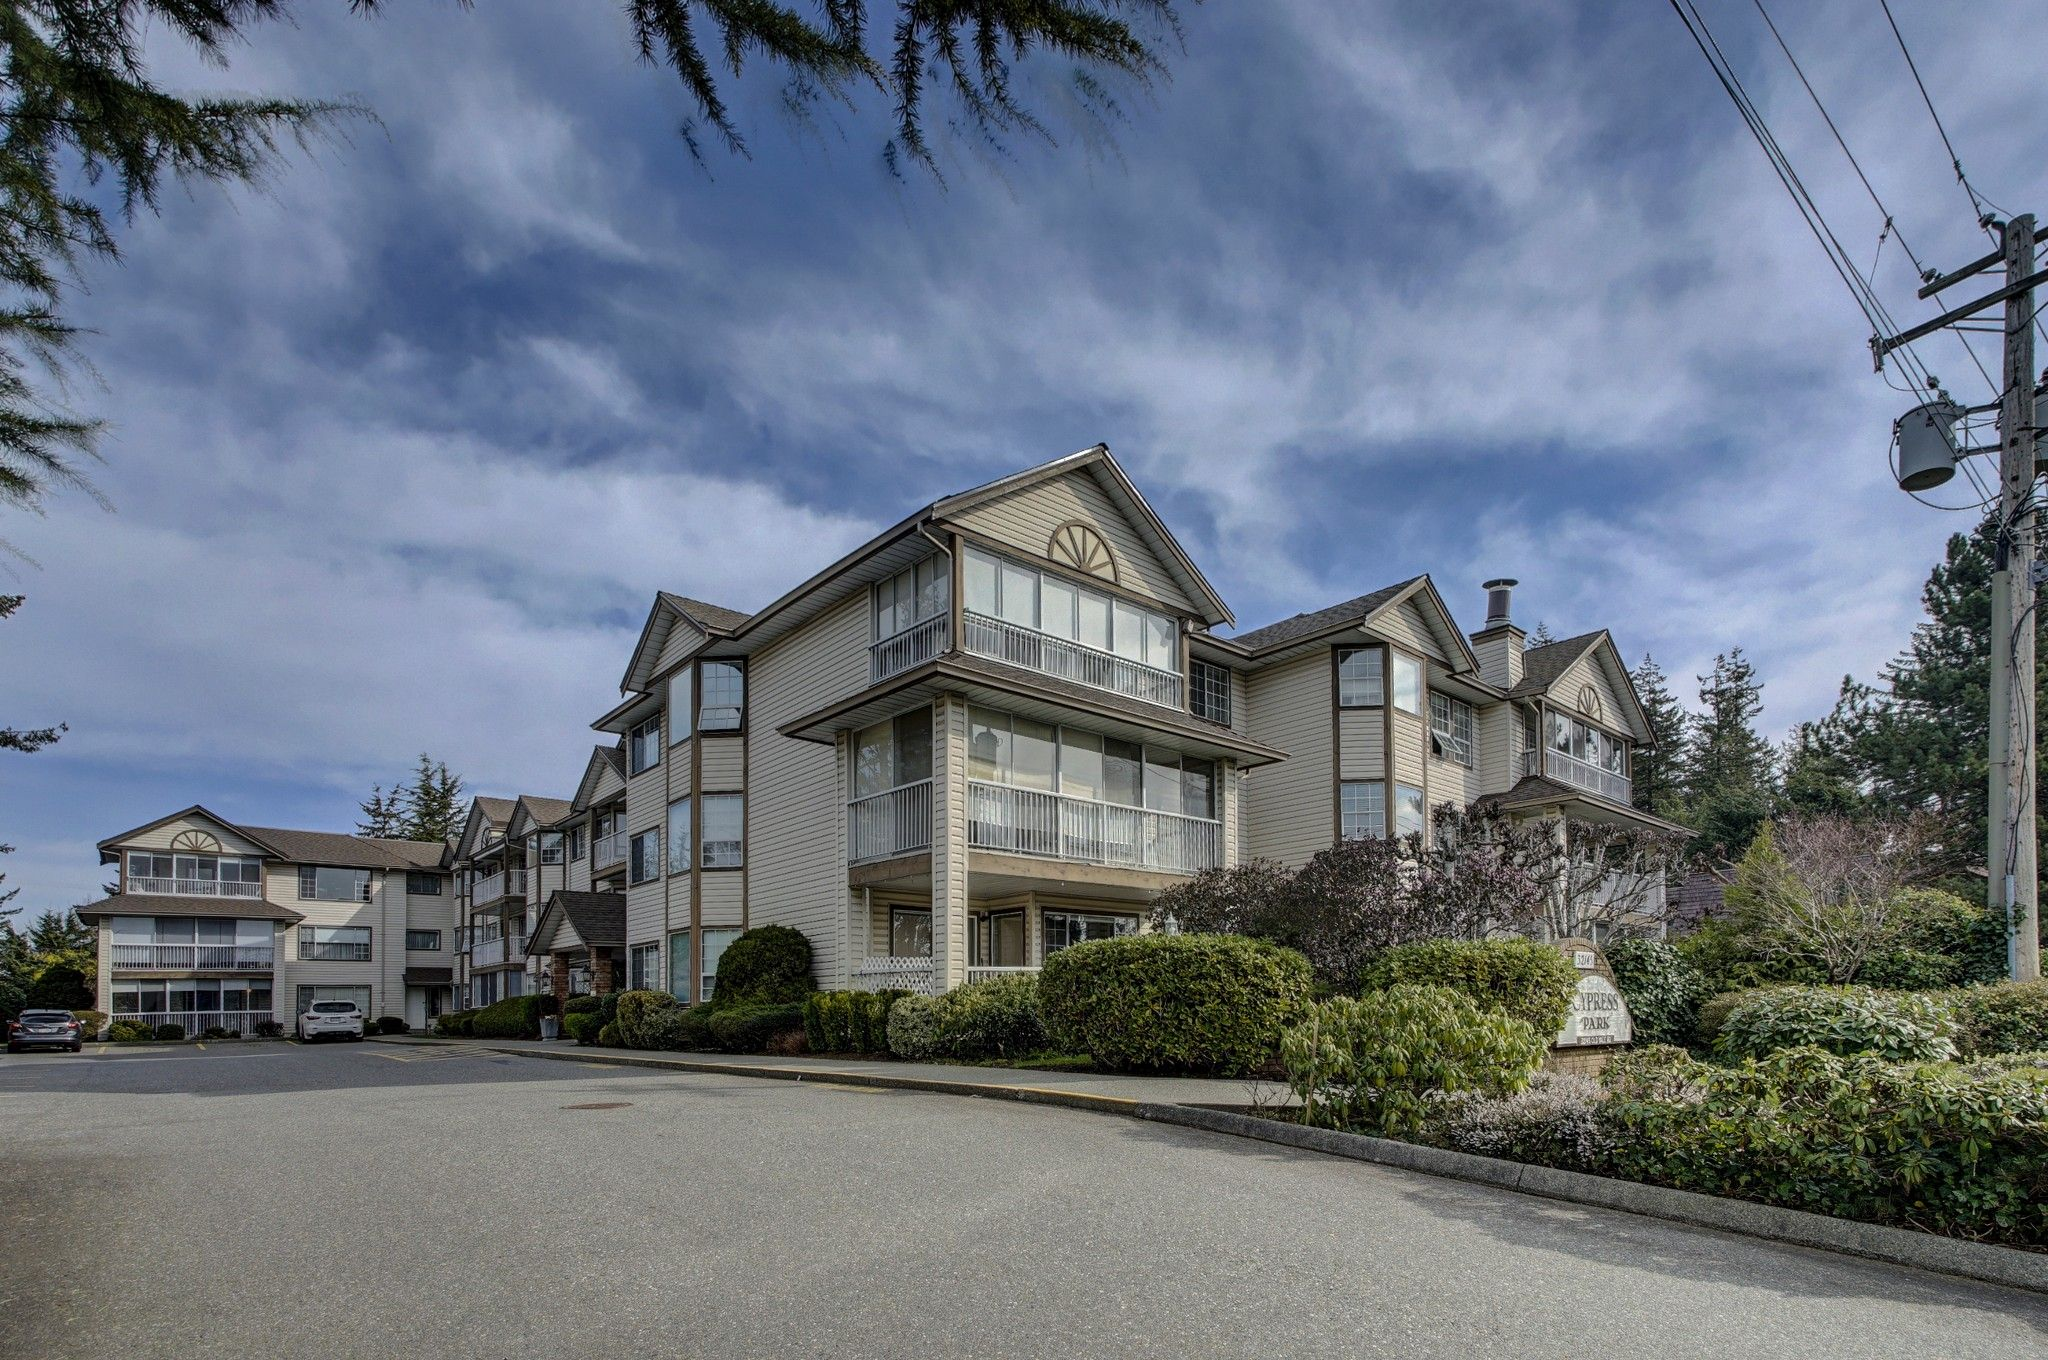 Main Photo: 306 32145 Old Yale Road in Abbotsford: Abbotsford West Condo for sale : MLS®# R2351465